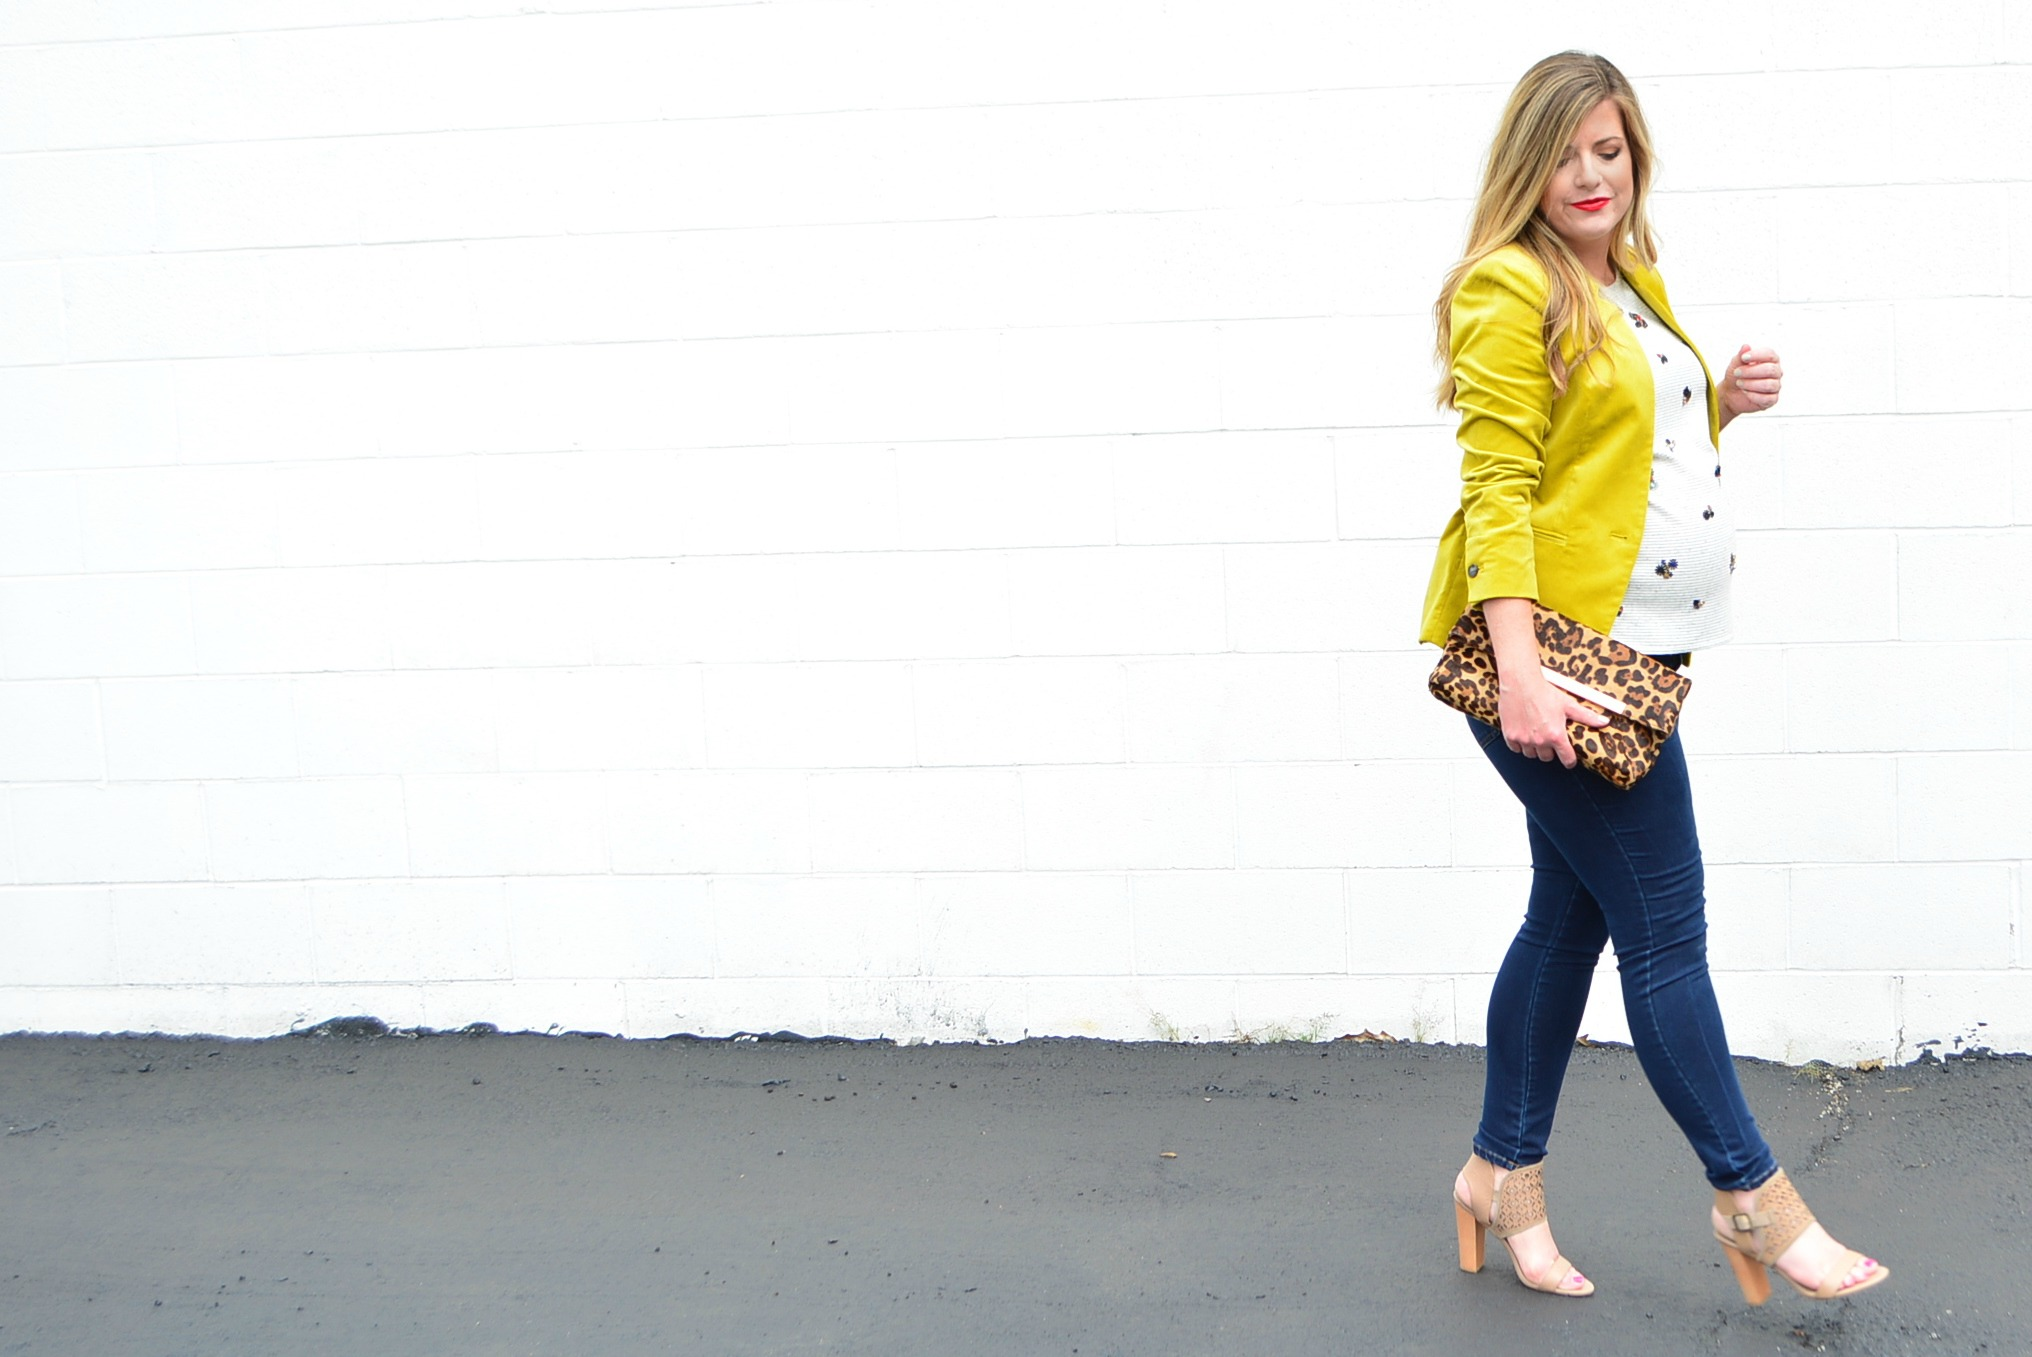 Banana Republic velvet jacket and embellished top for a great fall outfit